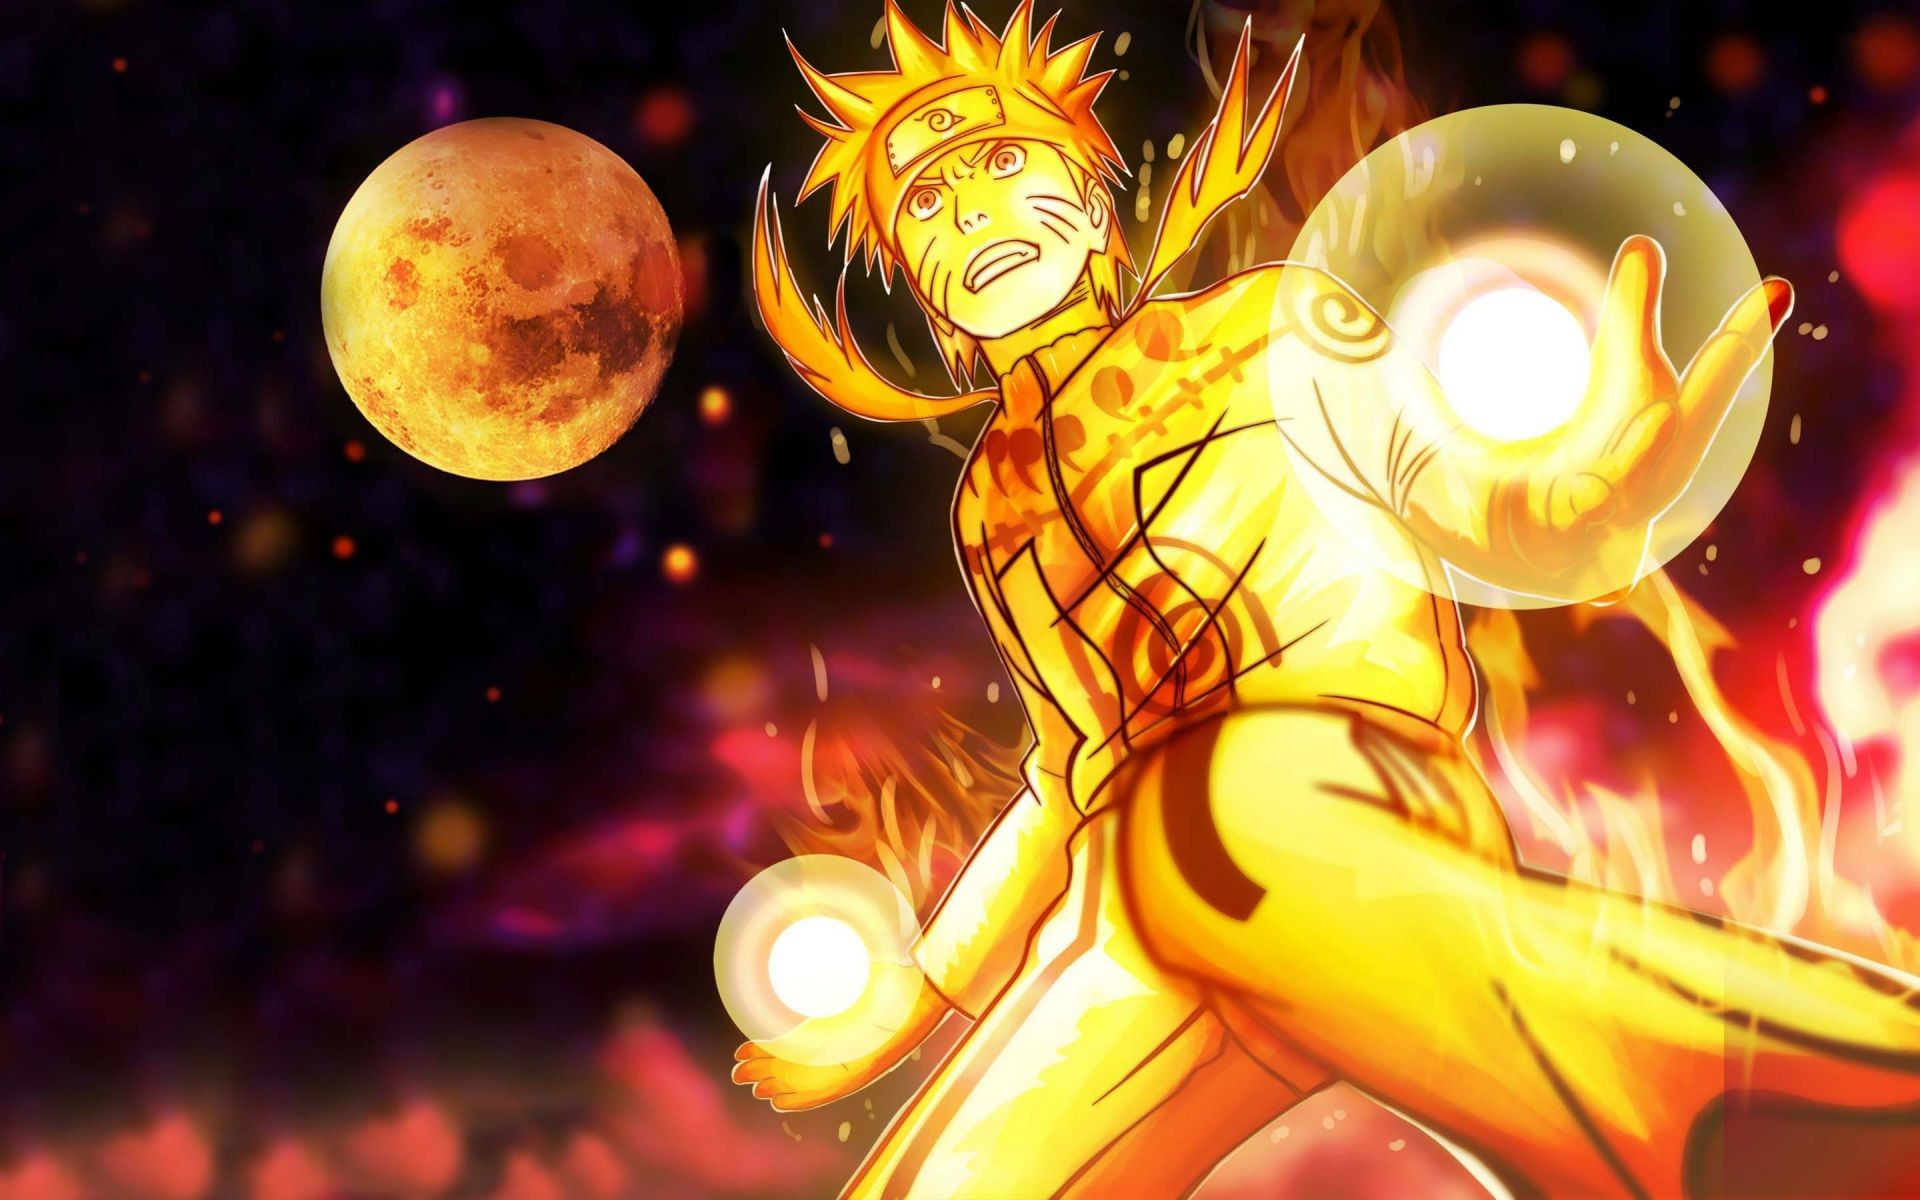 Res: 1920x1200, Naruto Fight Wallpaper | HD Anime Wallpaper Free Download ...